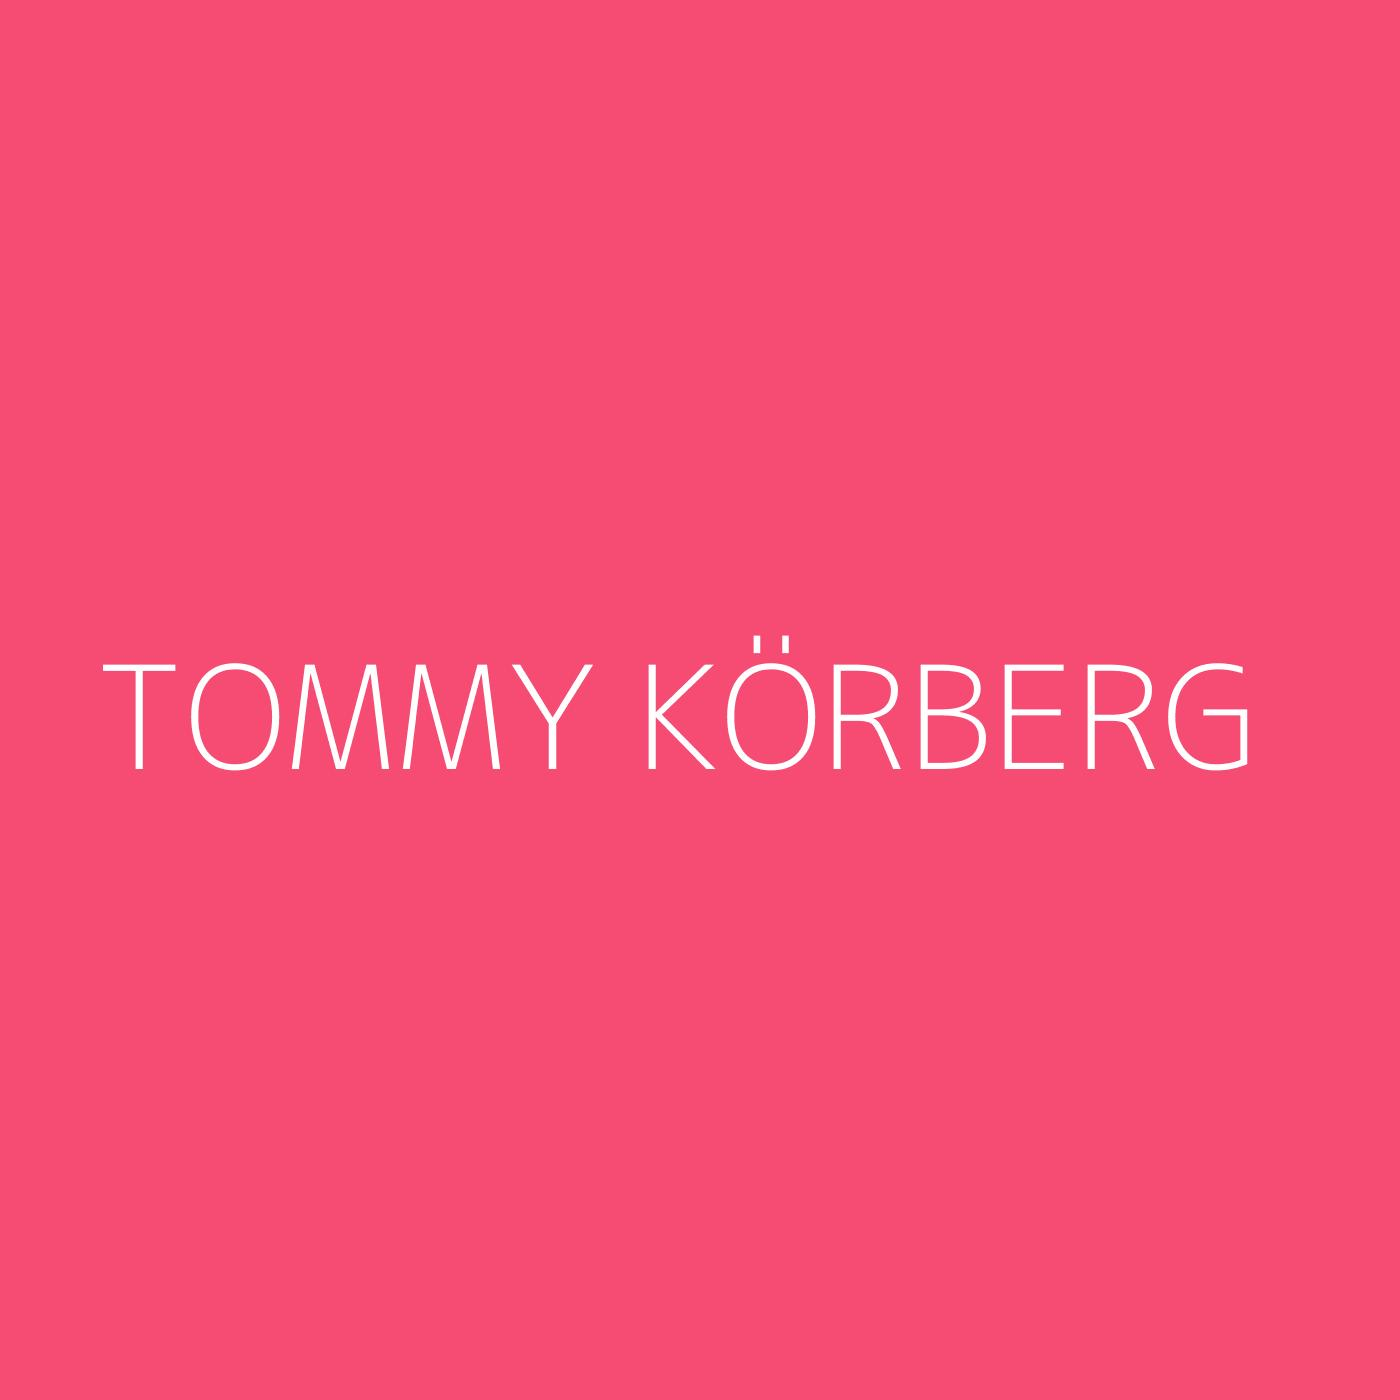 Tommy Körberg Playlist Artwork